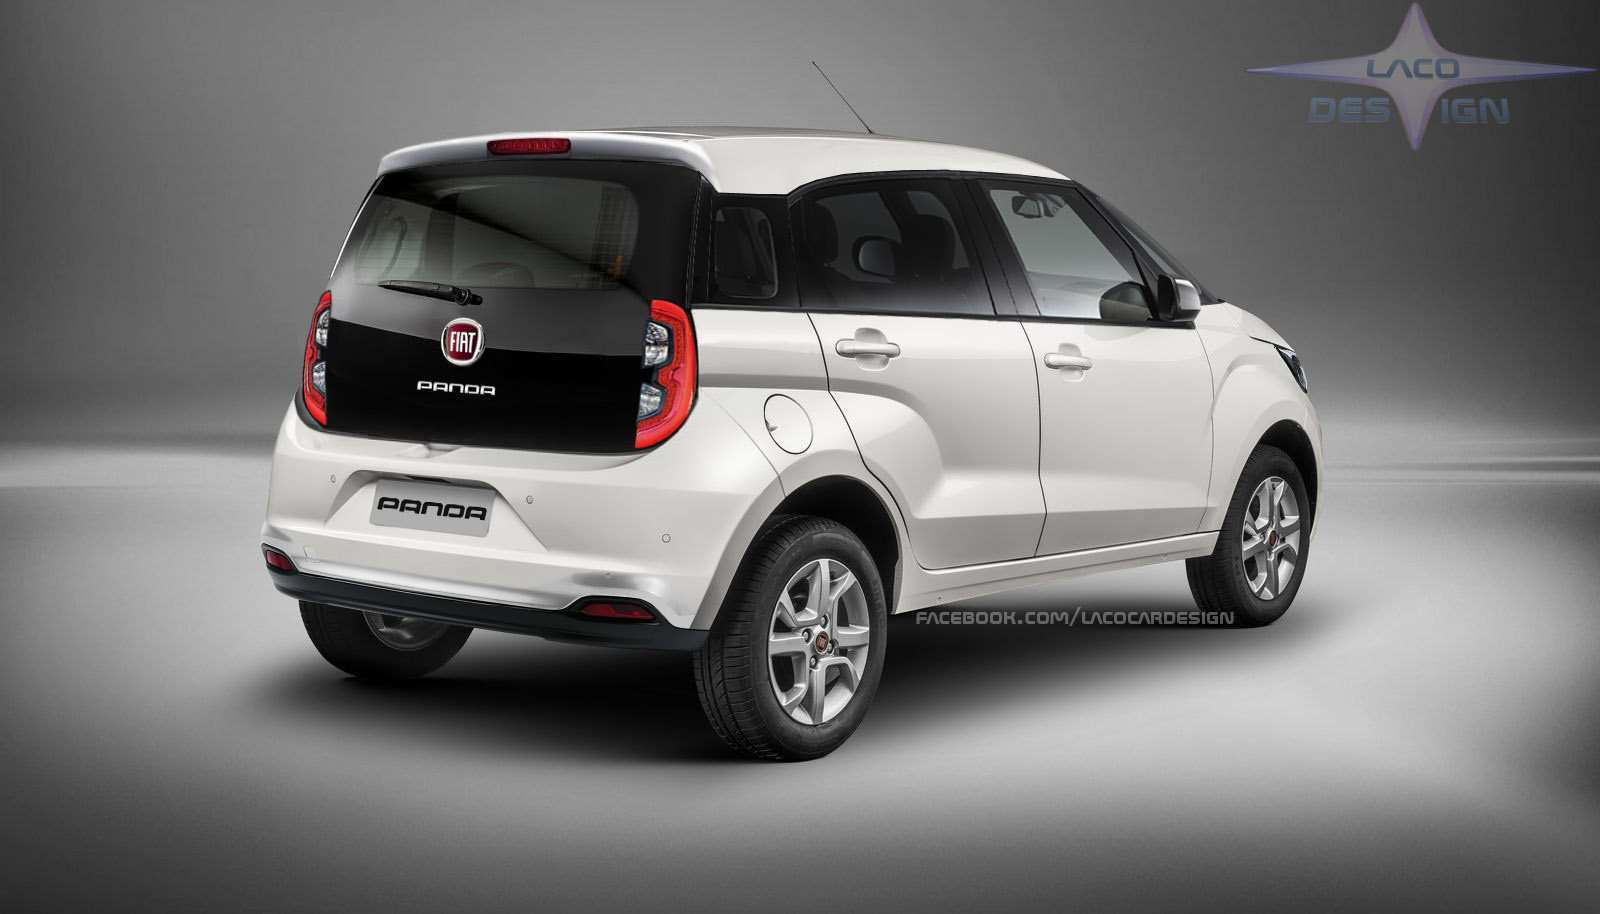 57 All New 2020 Fiat Panda Redesign and Concept by 2020 Fiat Panda